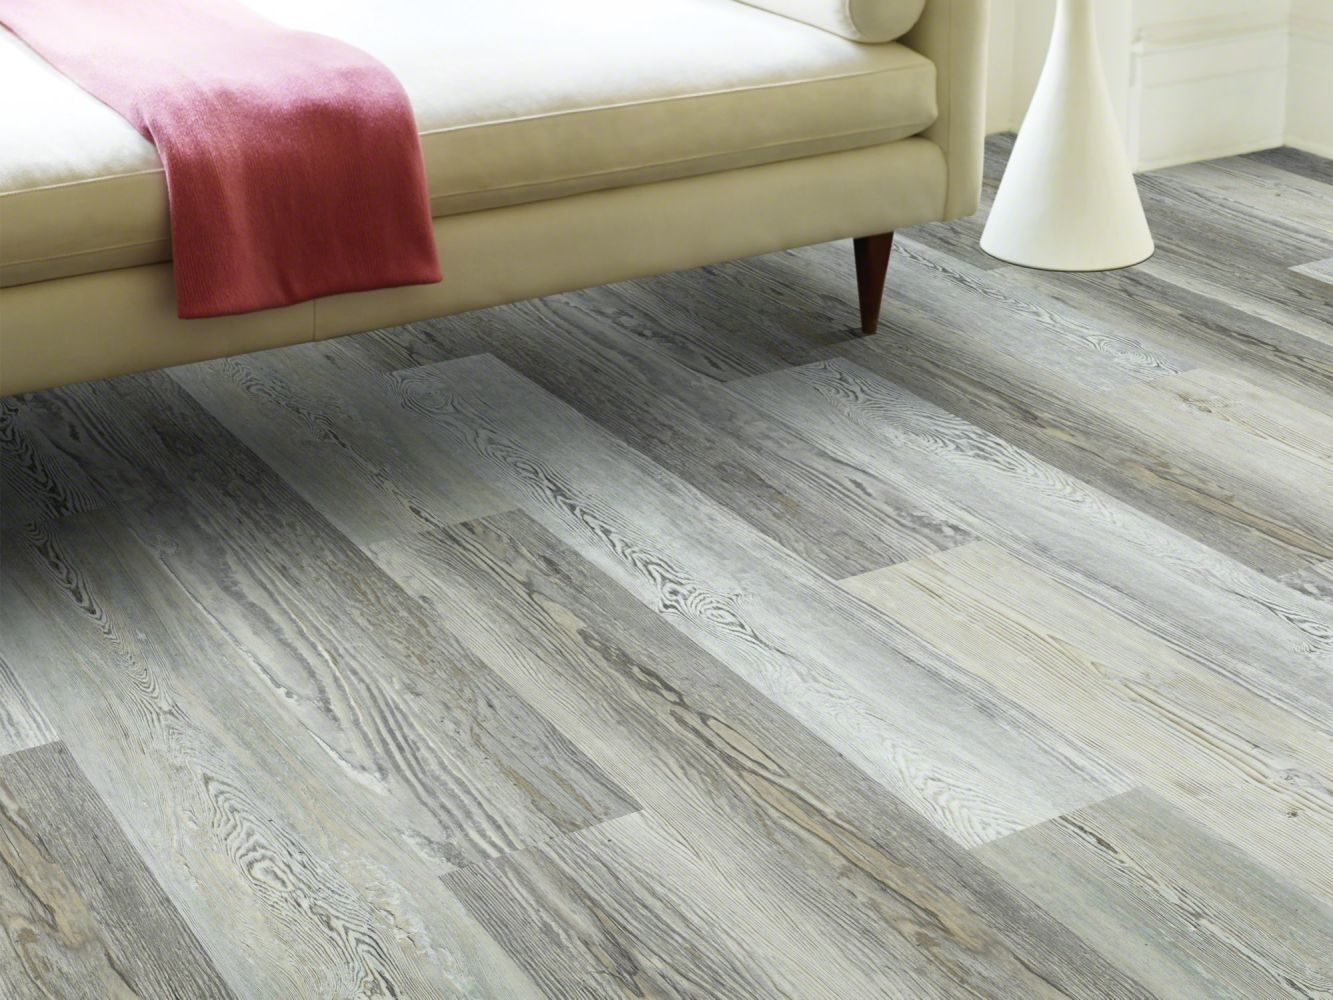 Shaw Floors Resilient Property Solutions Ravenna Plus Ashland Pine 05032_VE344